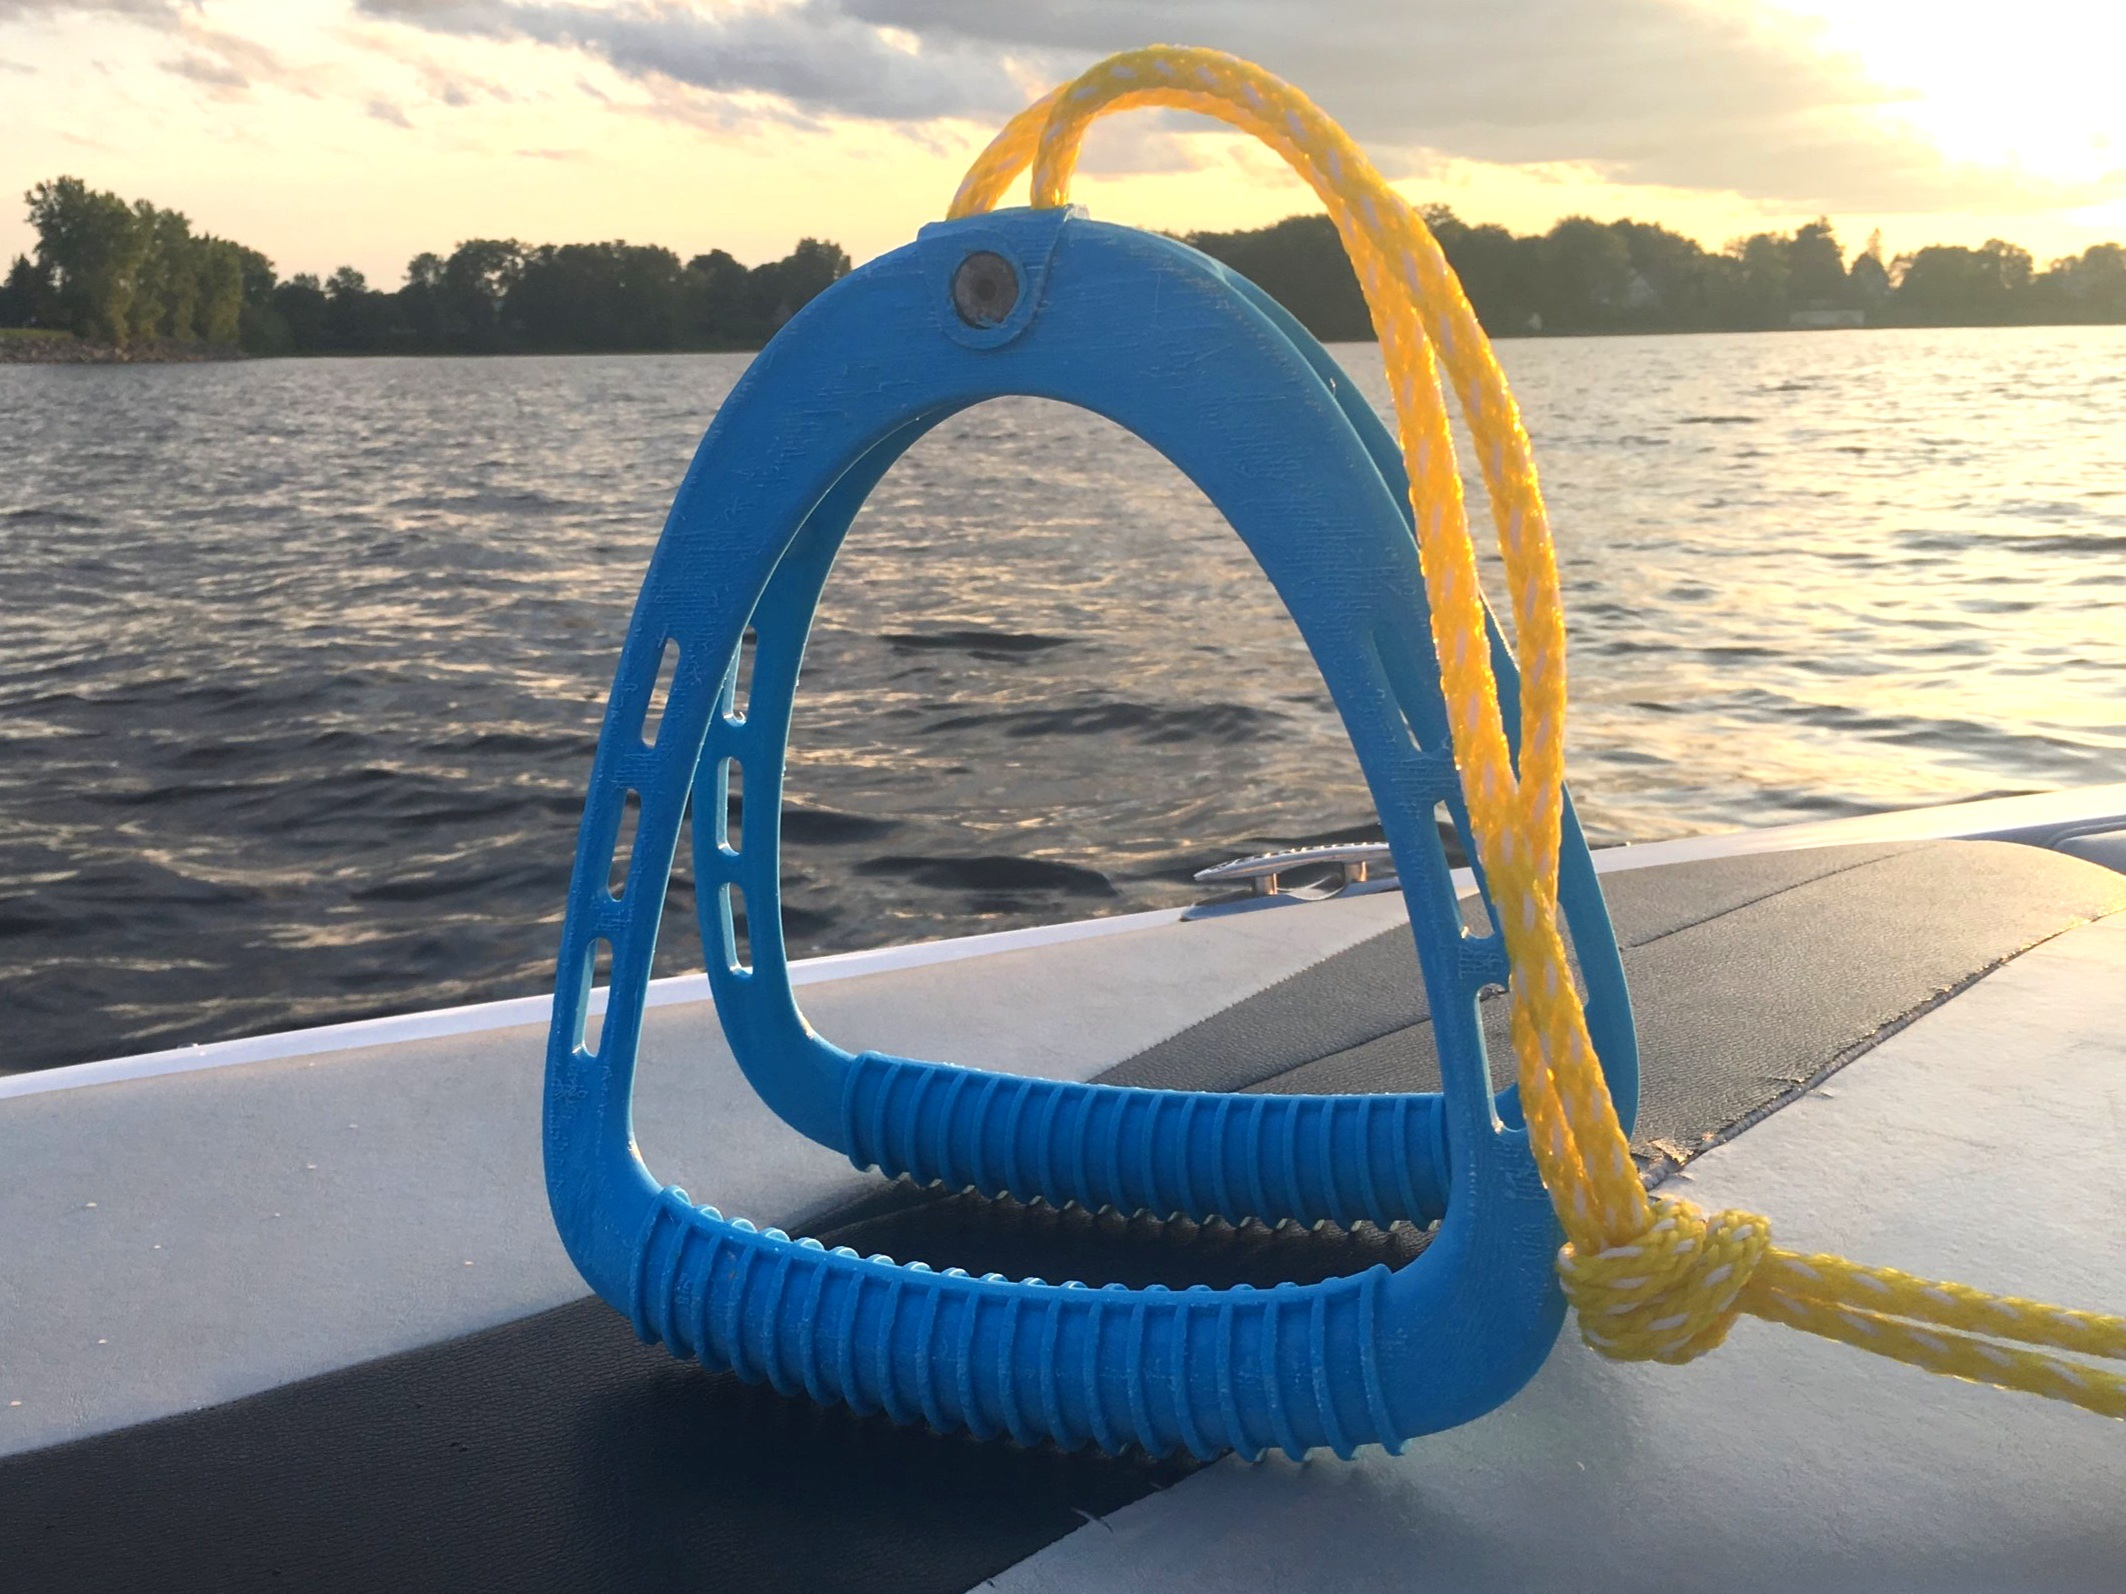 3D Print + Testing - To get a better understanding of the ergonomic considerations that were required for this product we 3D printed the handle and hooked it up to the back of a boat. The handle withstood the test and any required changes were made.